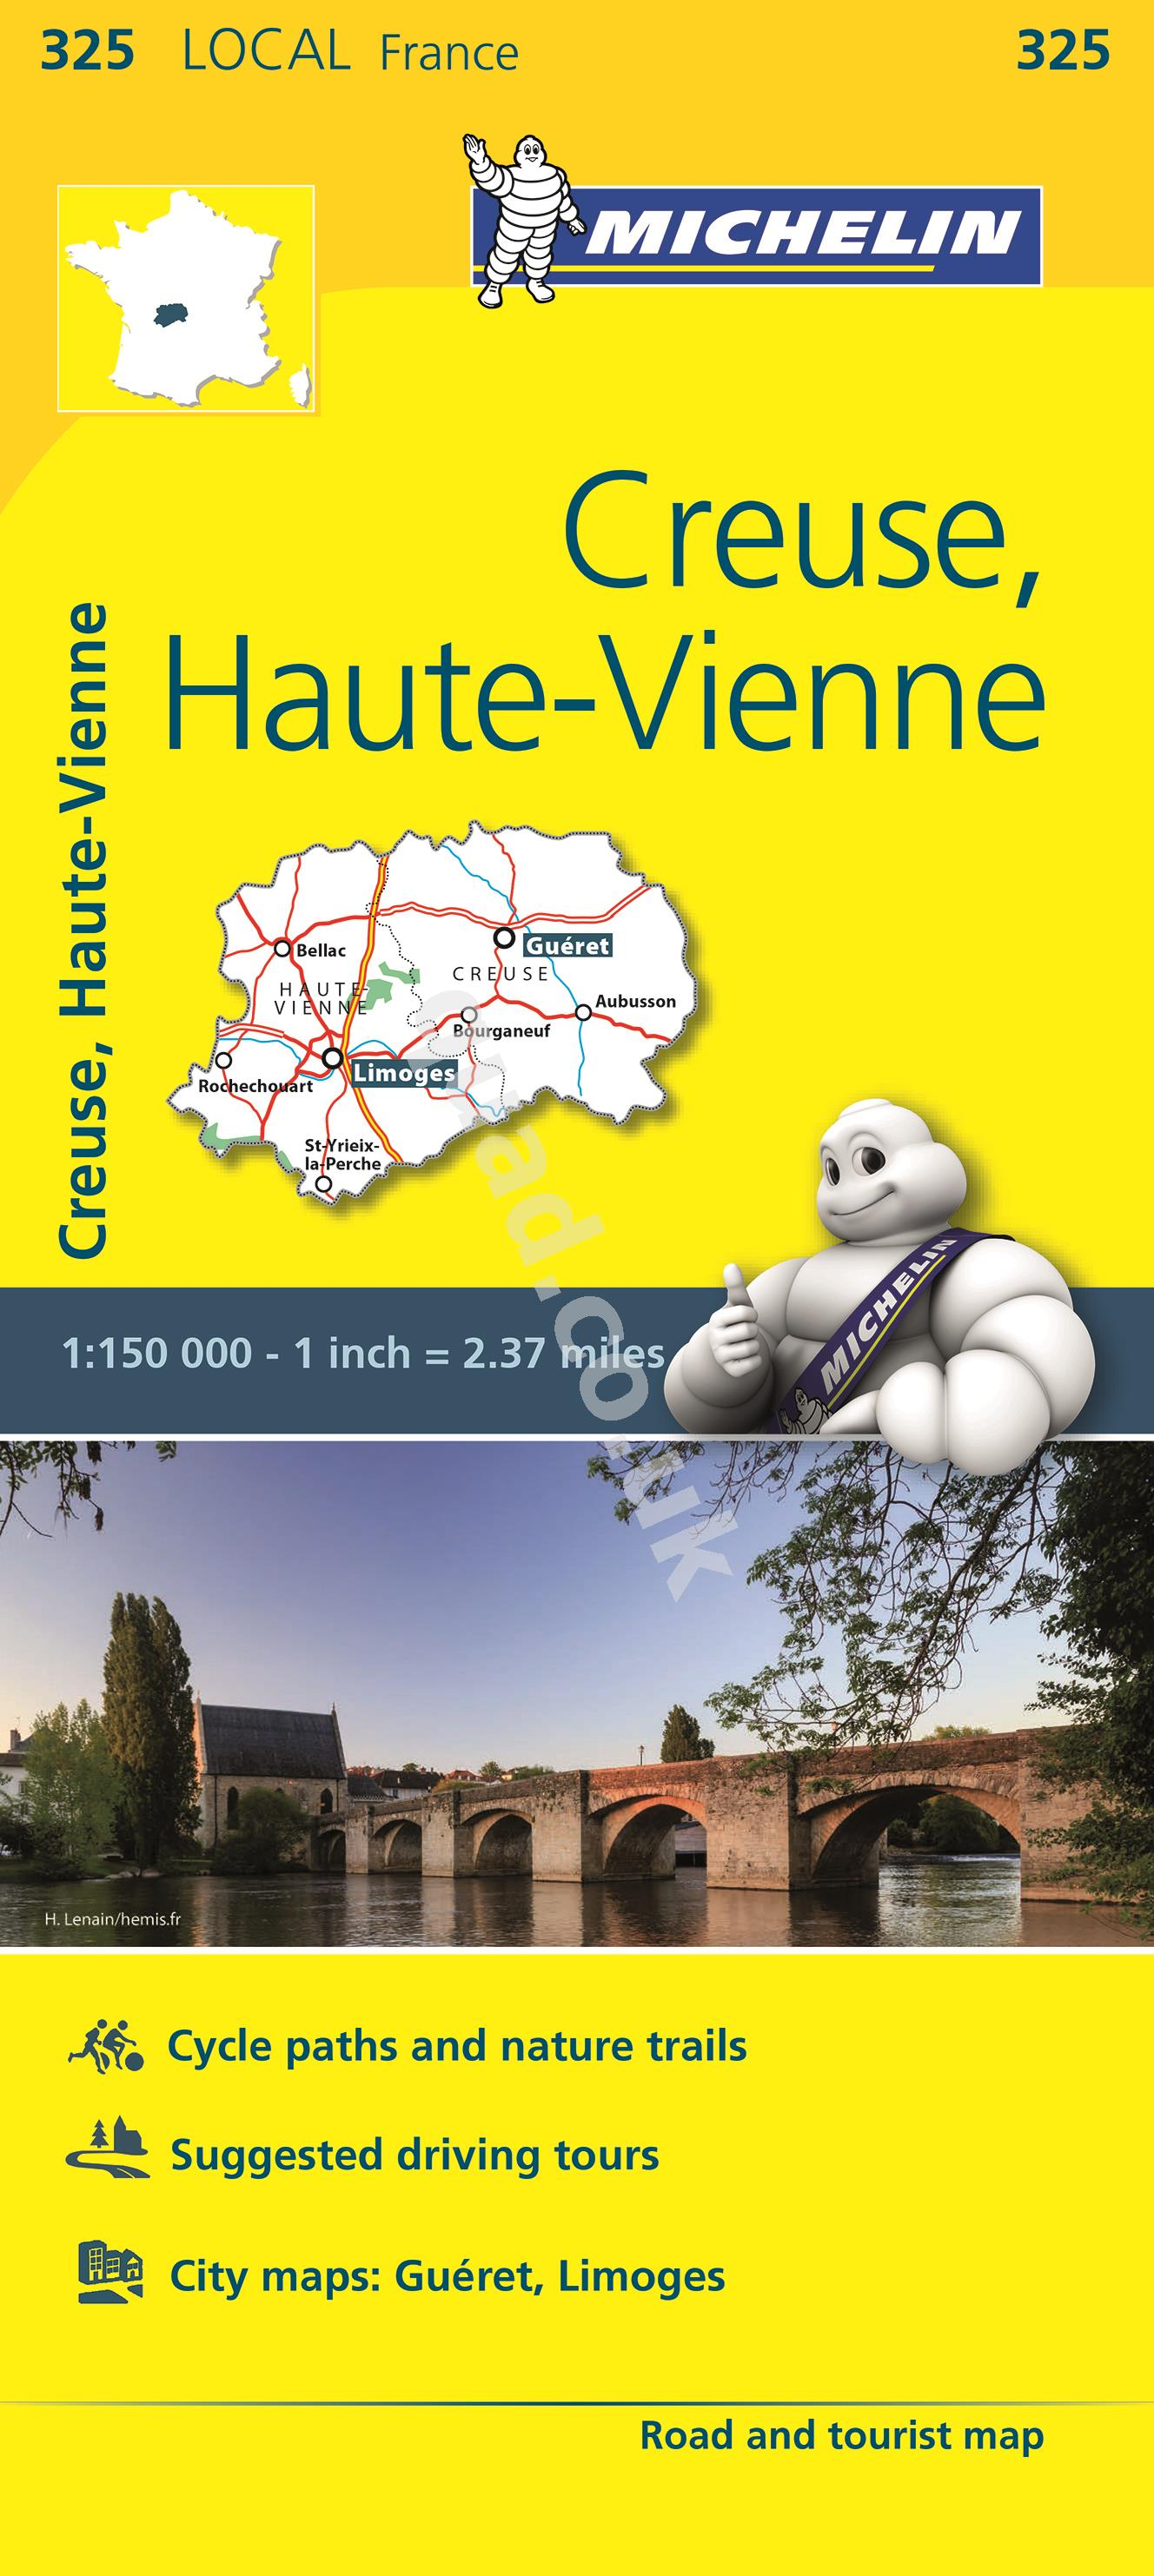 Michelin  Local Map - Creuse, Haute-Vienne (France)